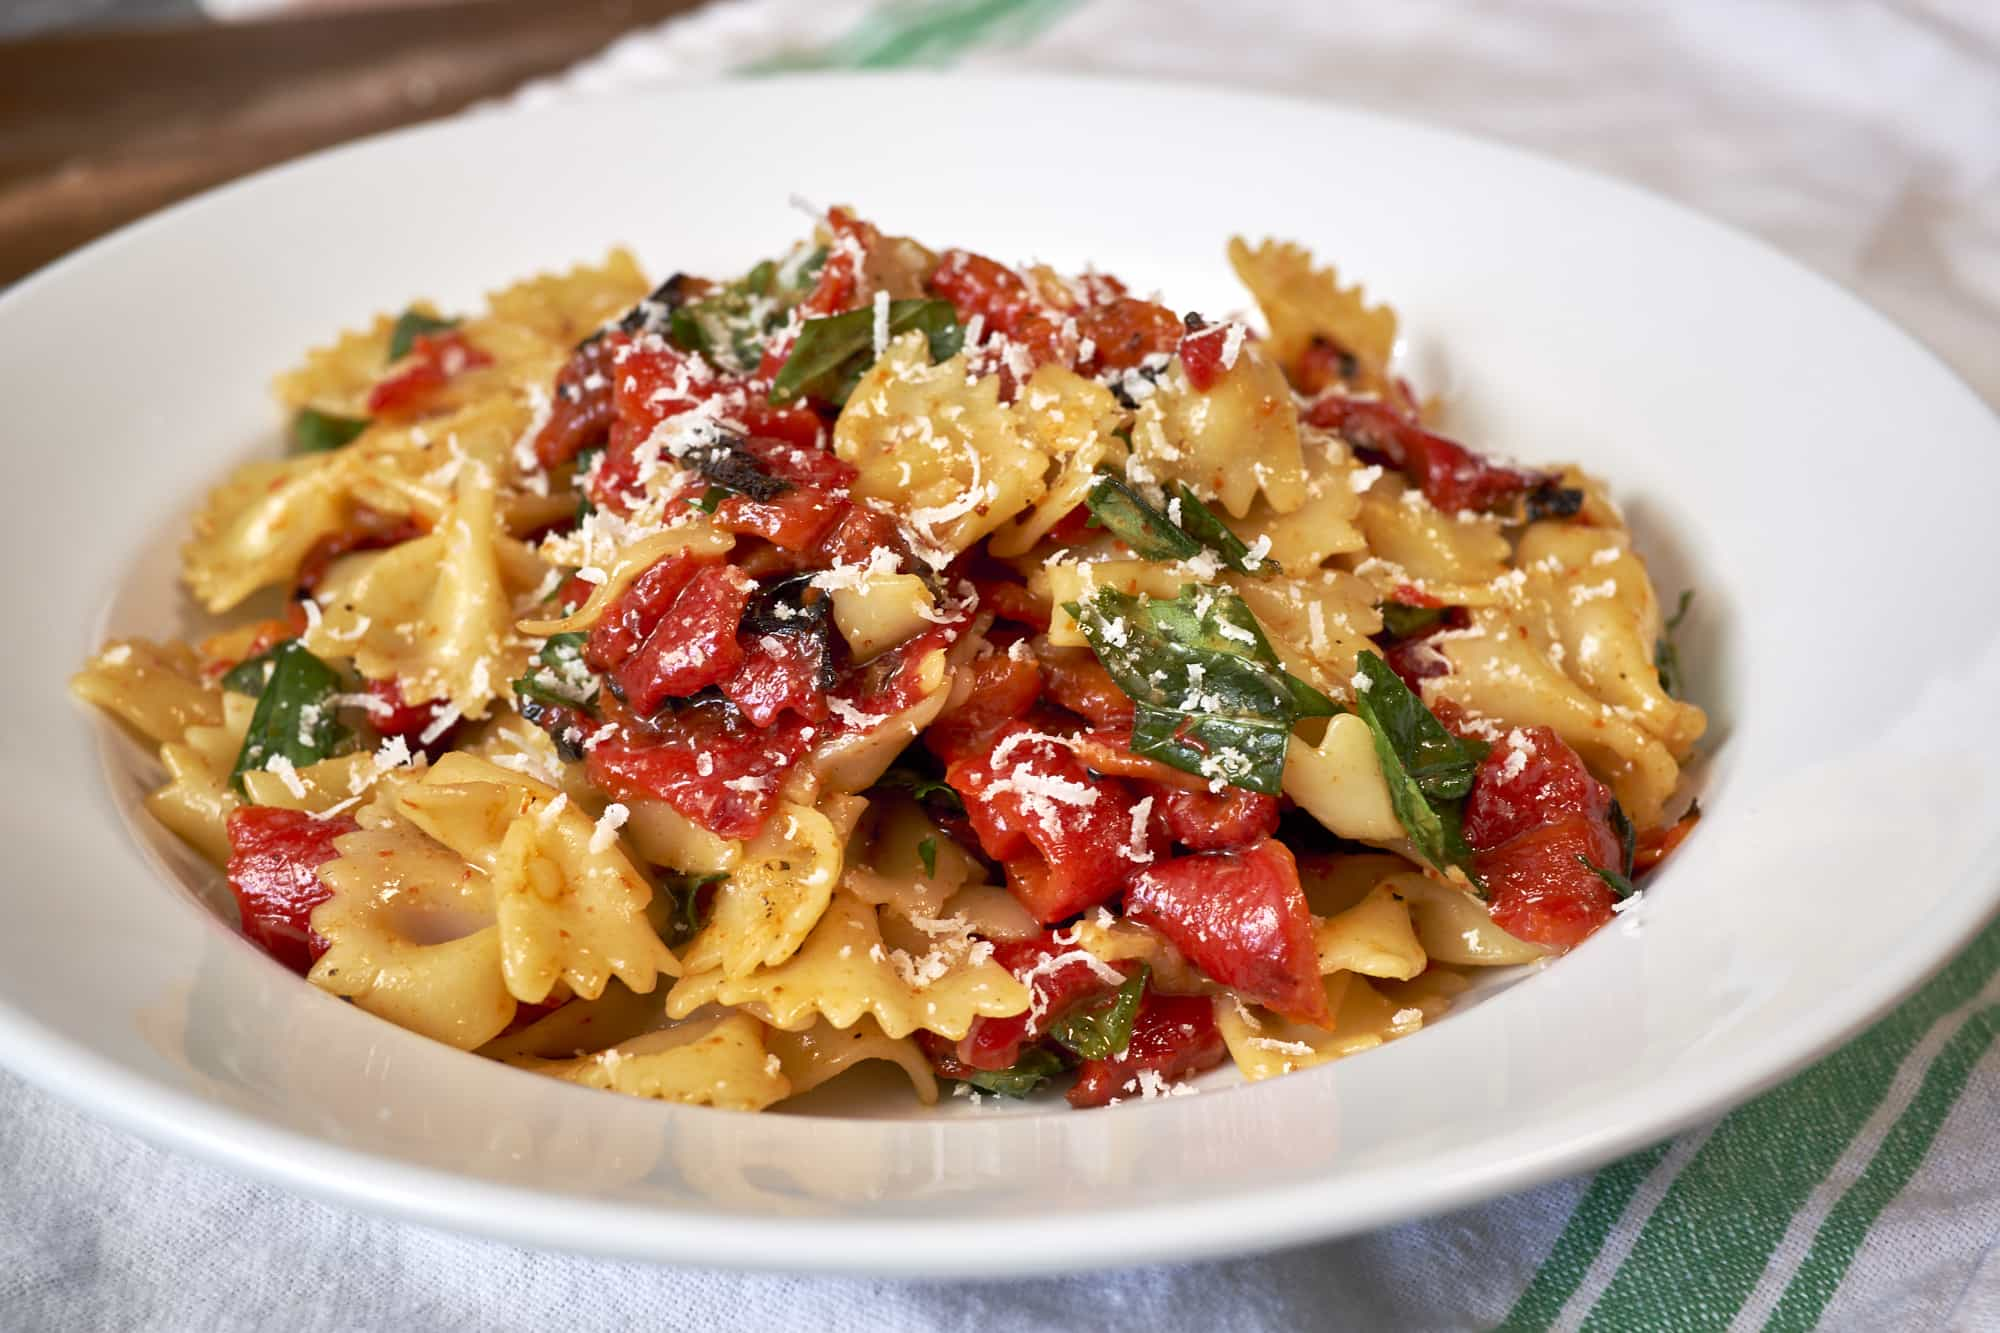 Bowtie Pasta with Home Roasted Red Peppers and Basil